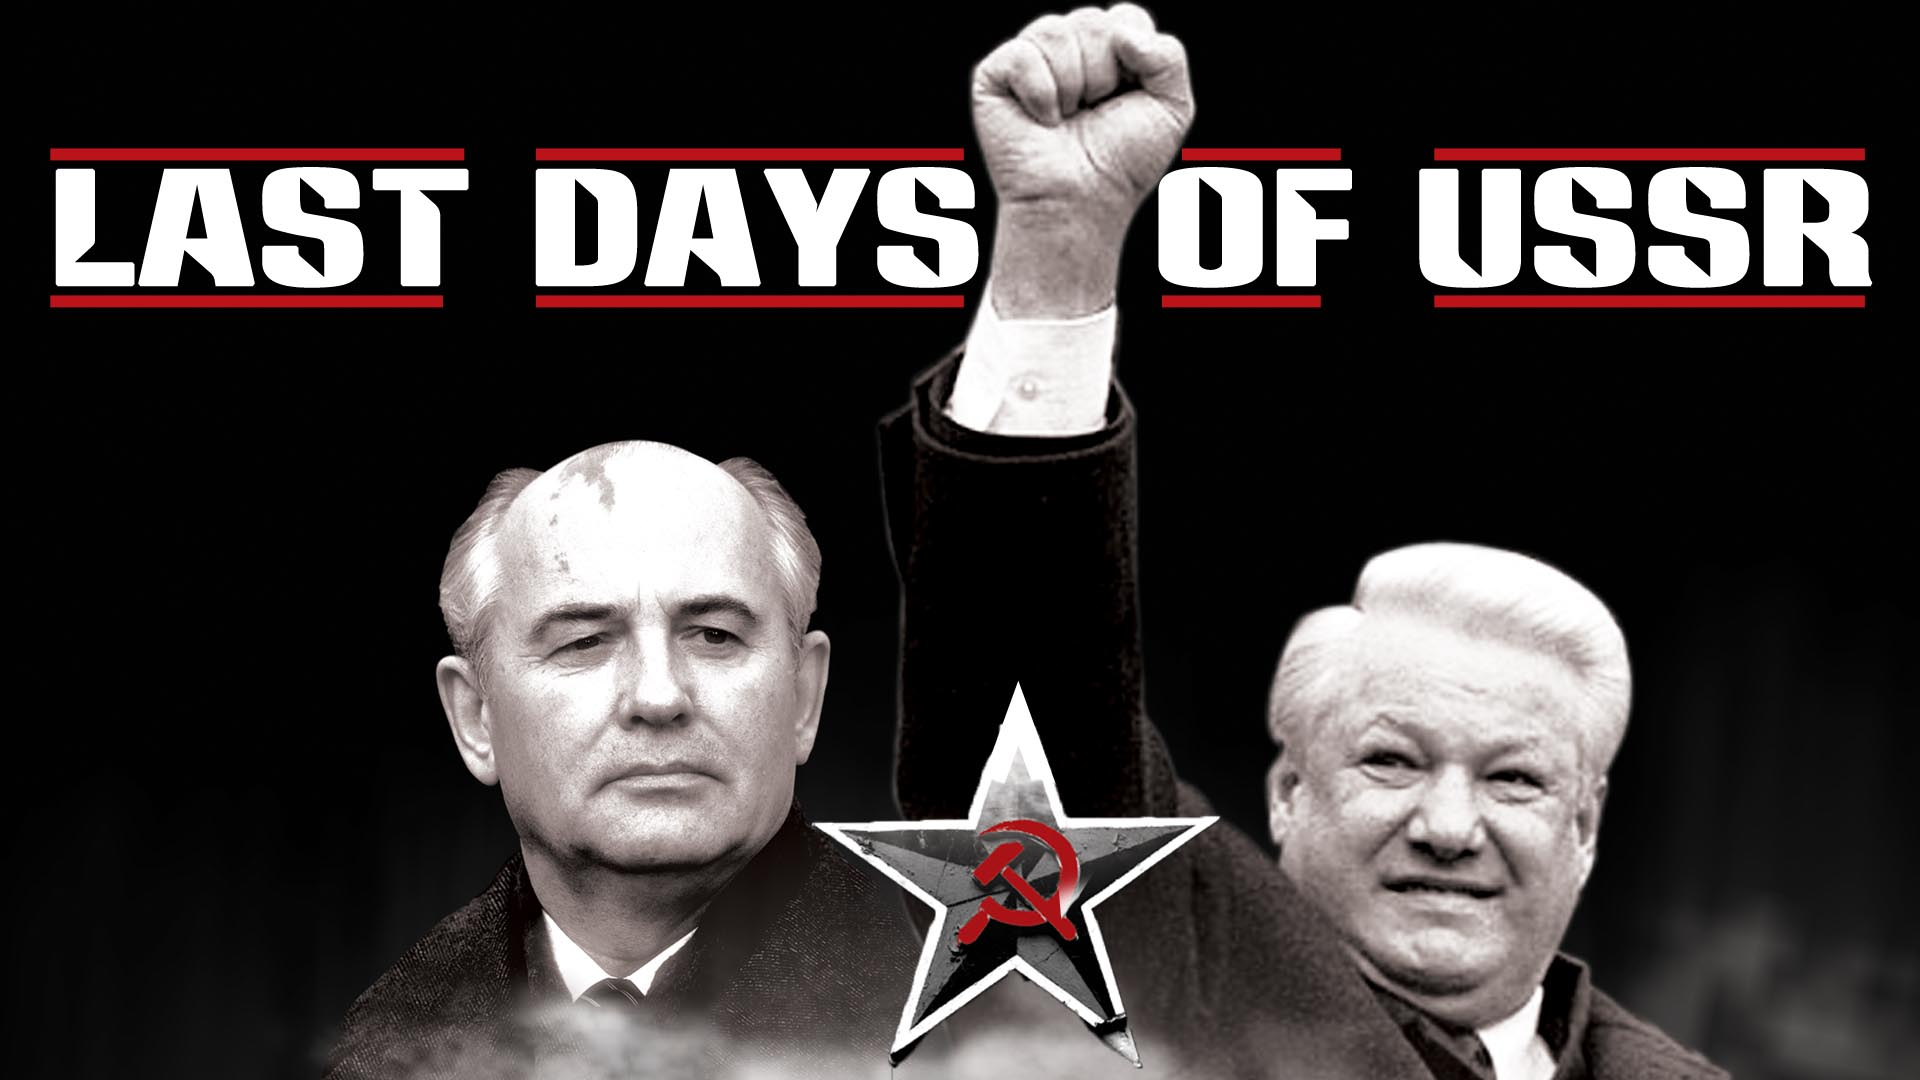 Last Days of the USSR -